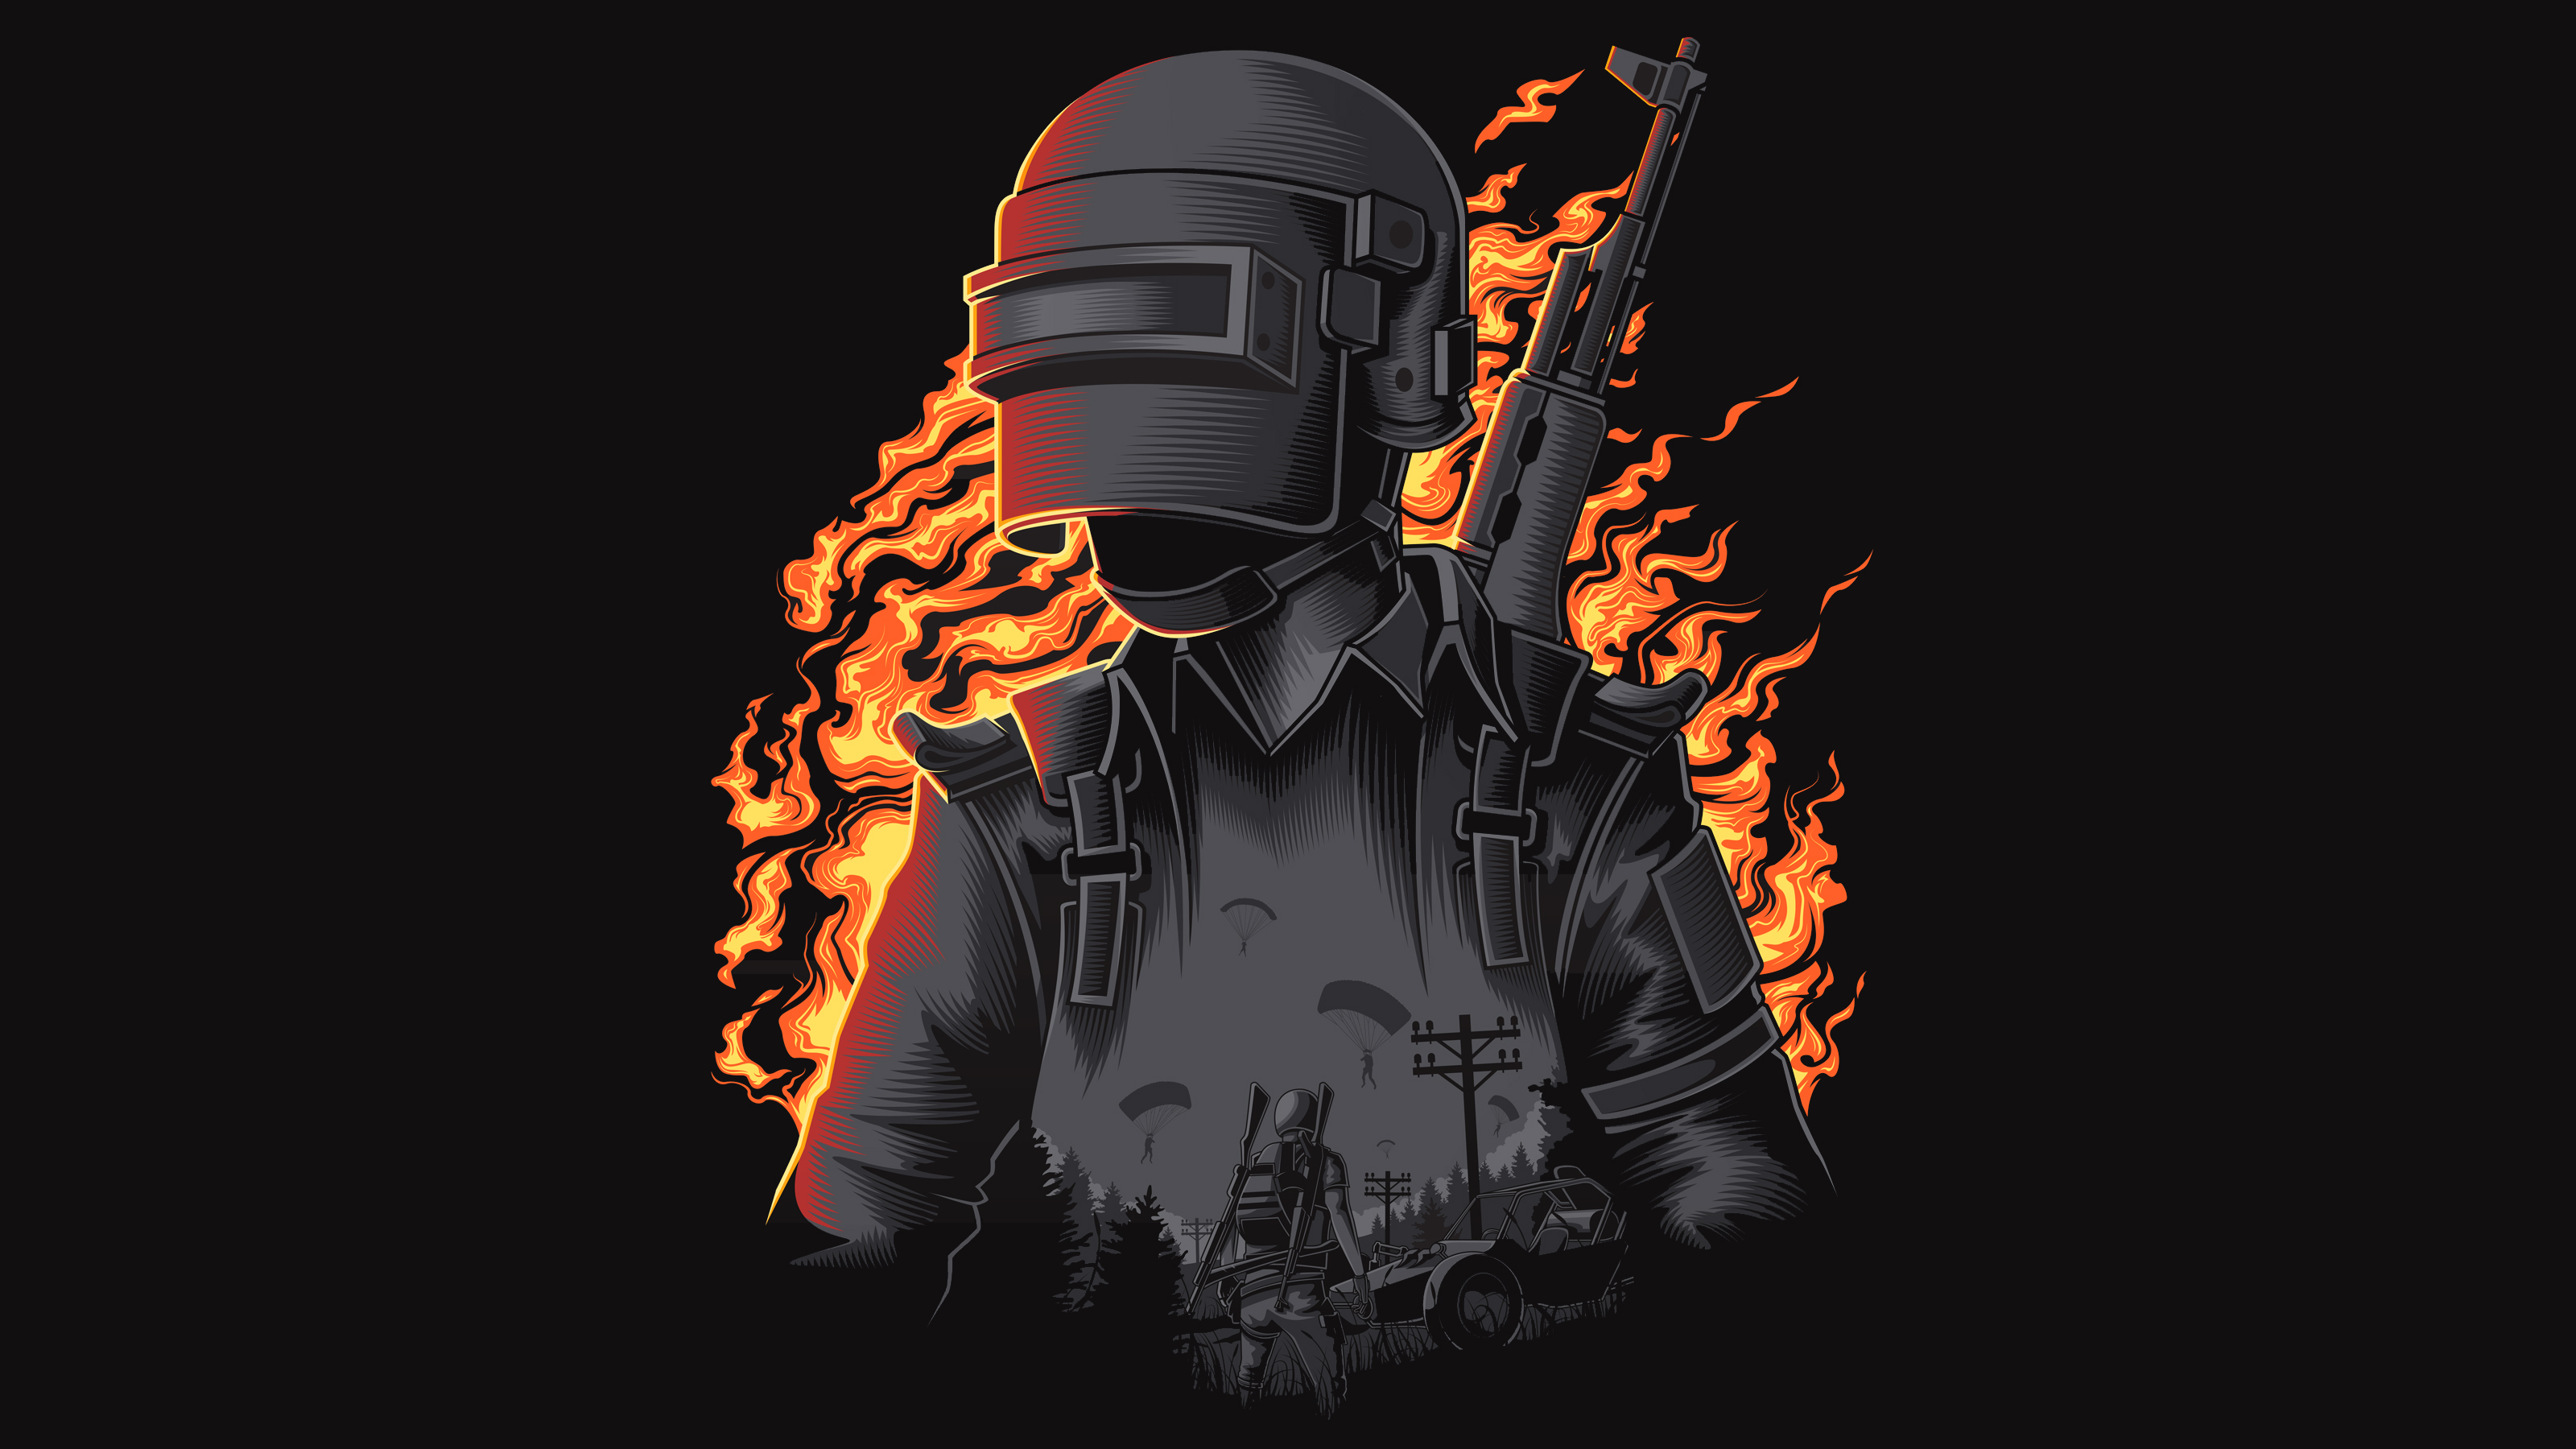 Pubg Ultra Hd Pc: PUBG Dark Illustration Wallpapers